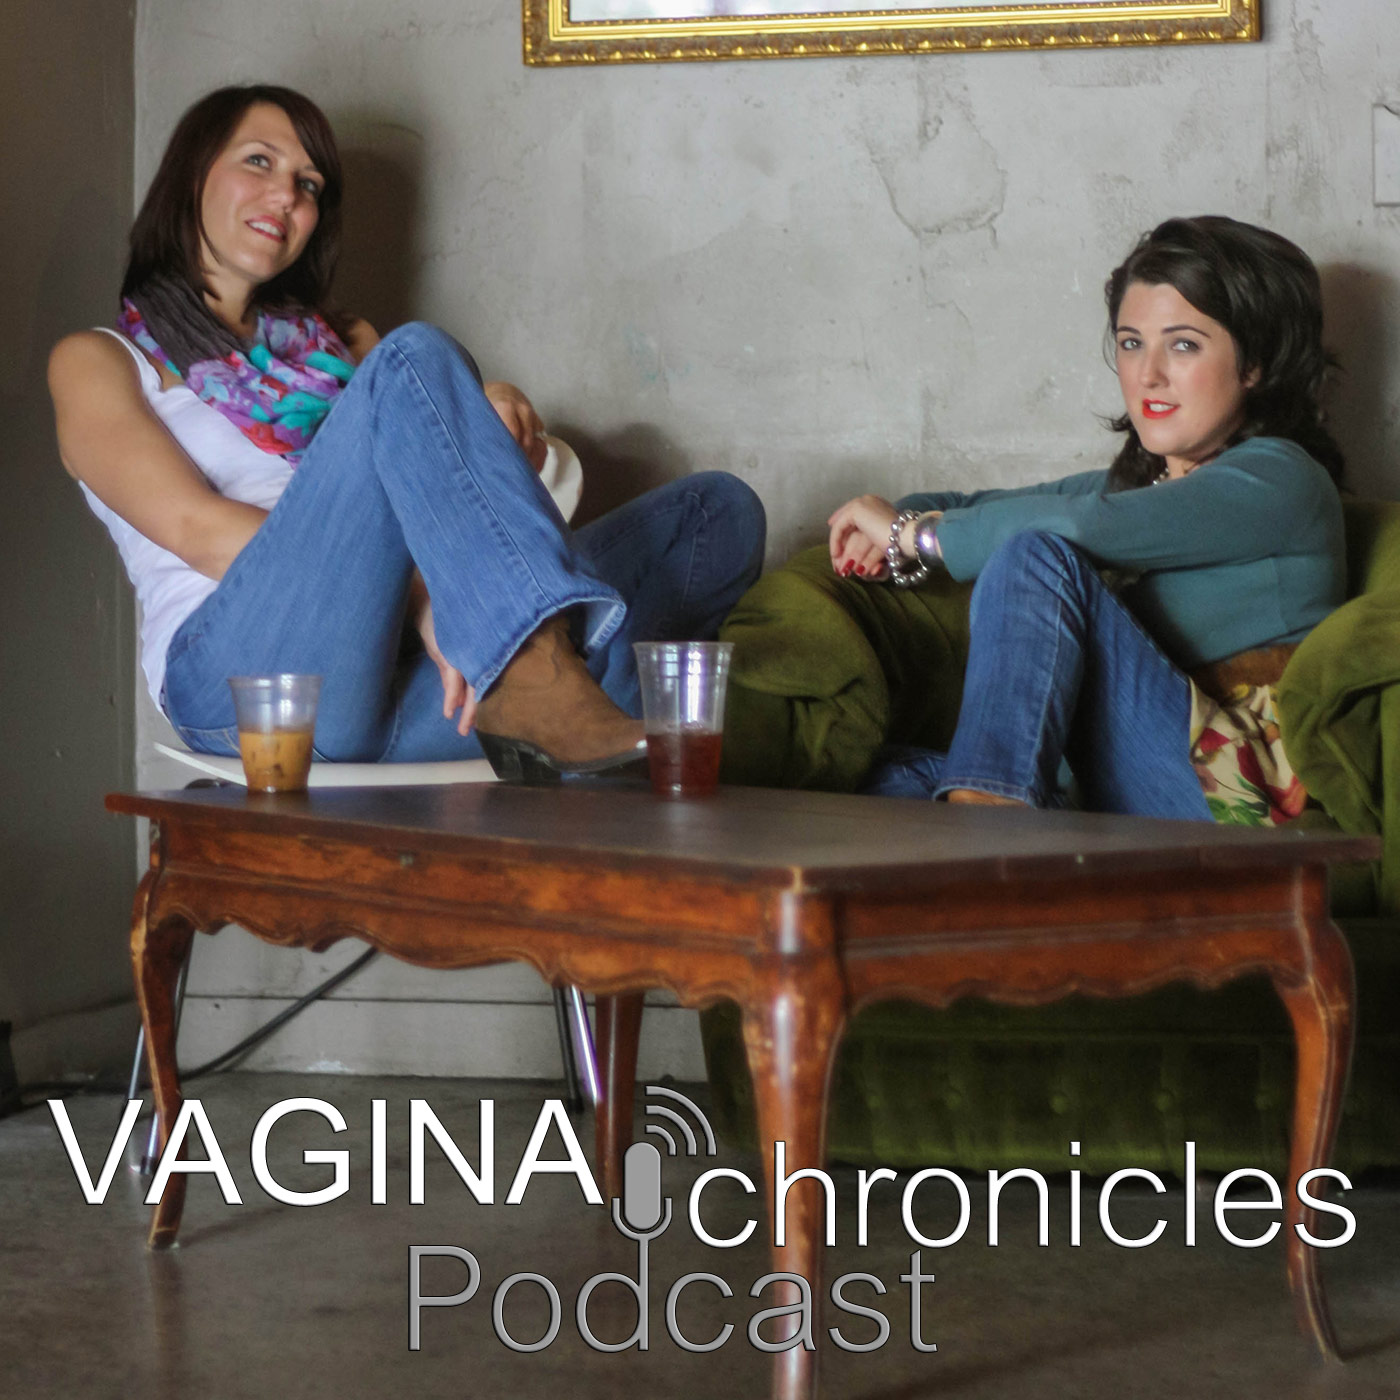 Vagina Chronicles Podcast » Podcast